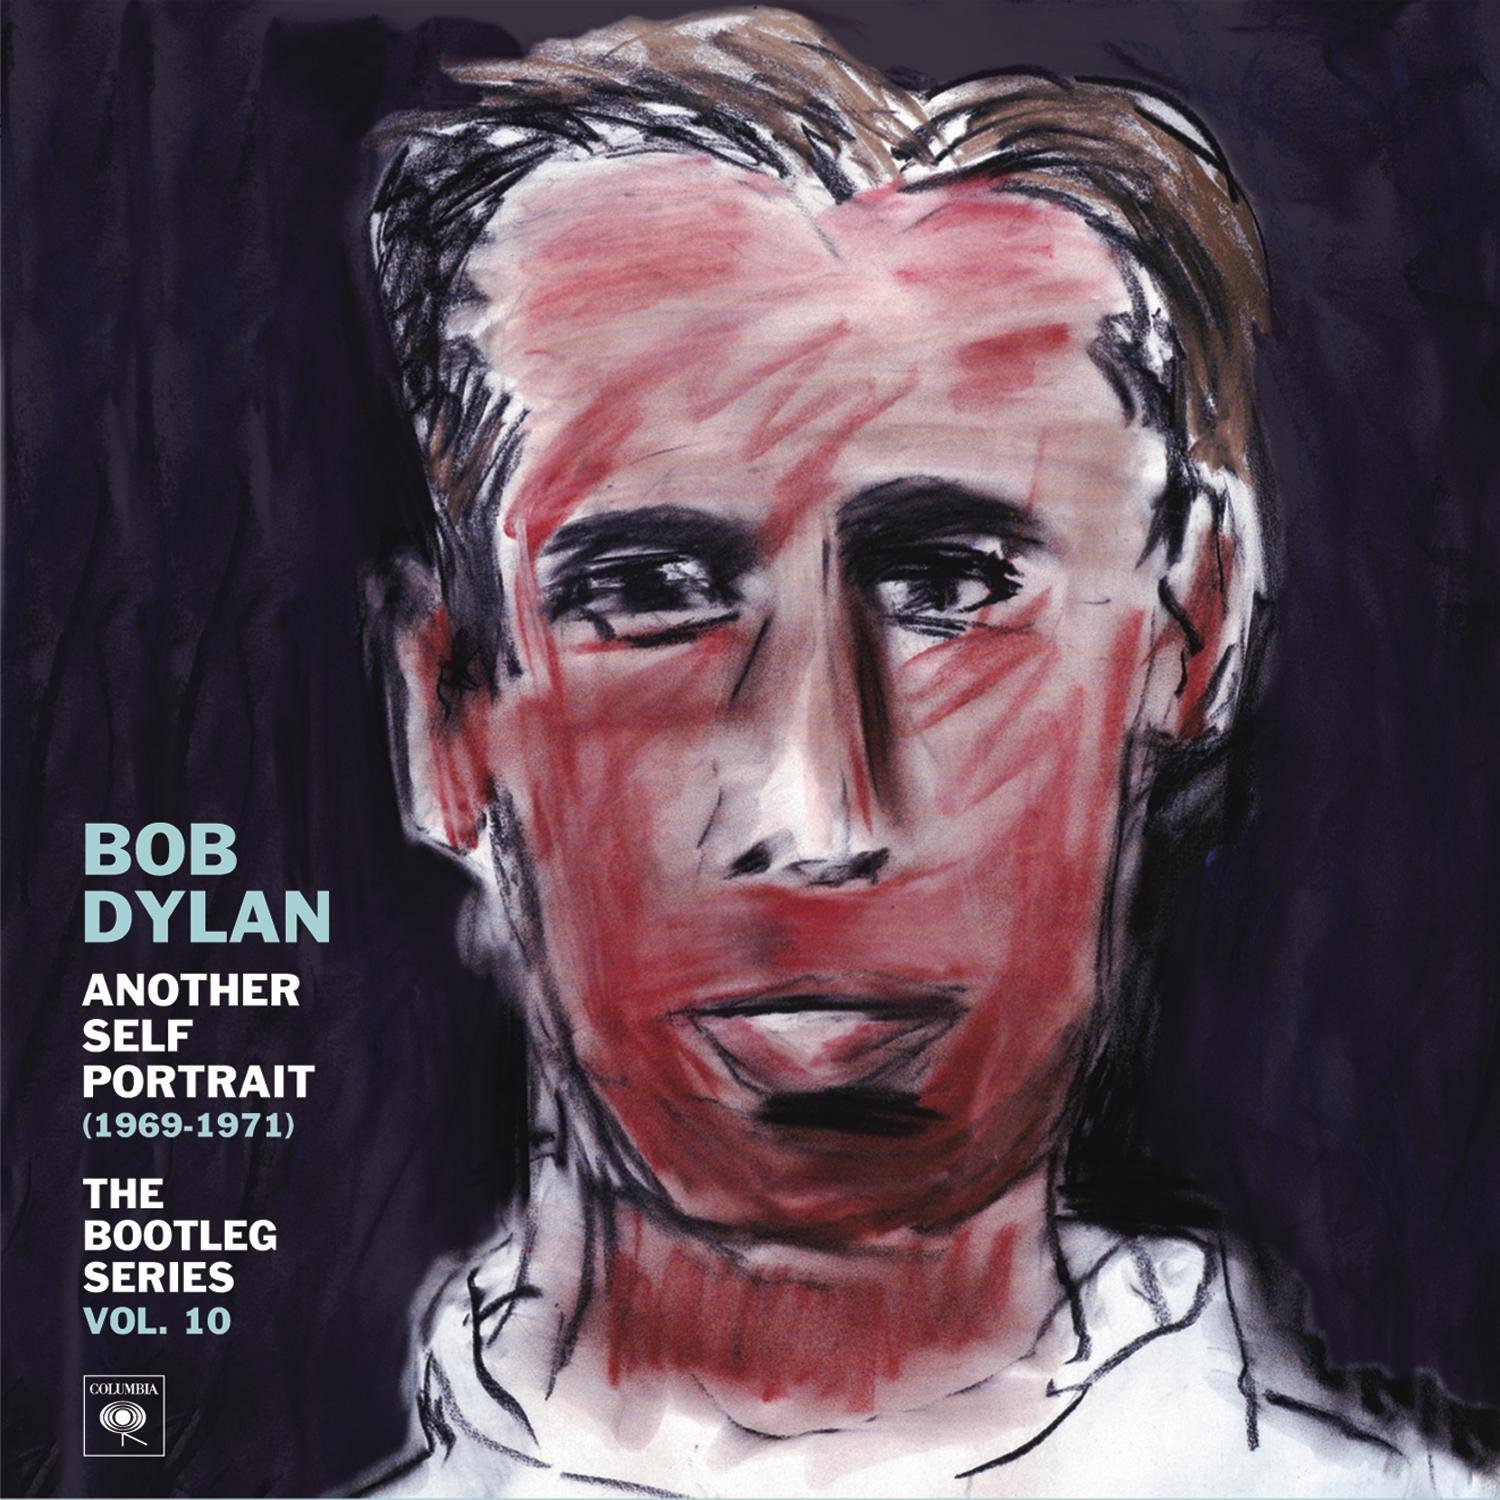 Bob Dylan – The Bootleg Series Vol. 10  Another Self Portrait (1969-1971) (2013) [FLAC]